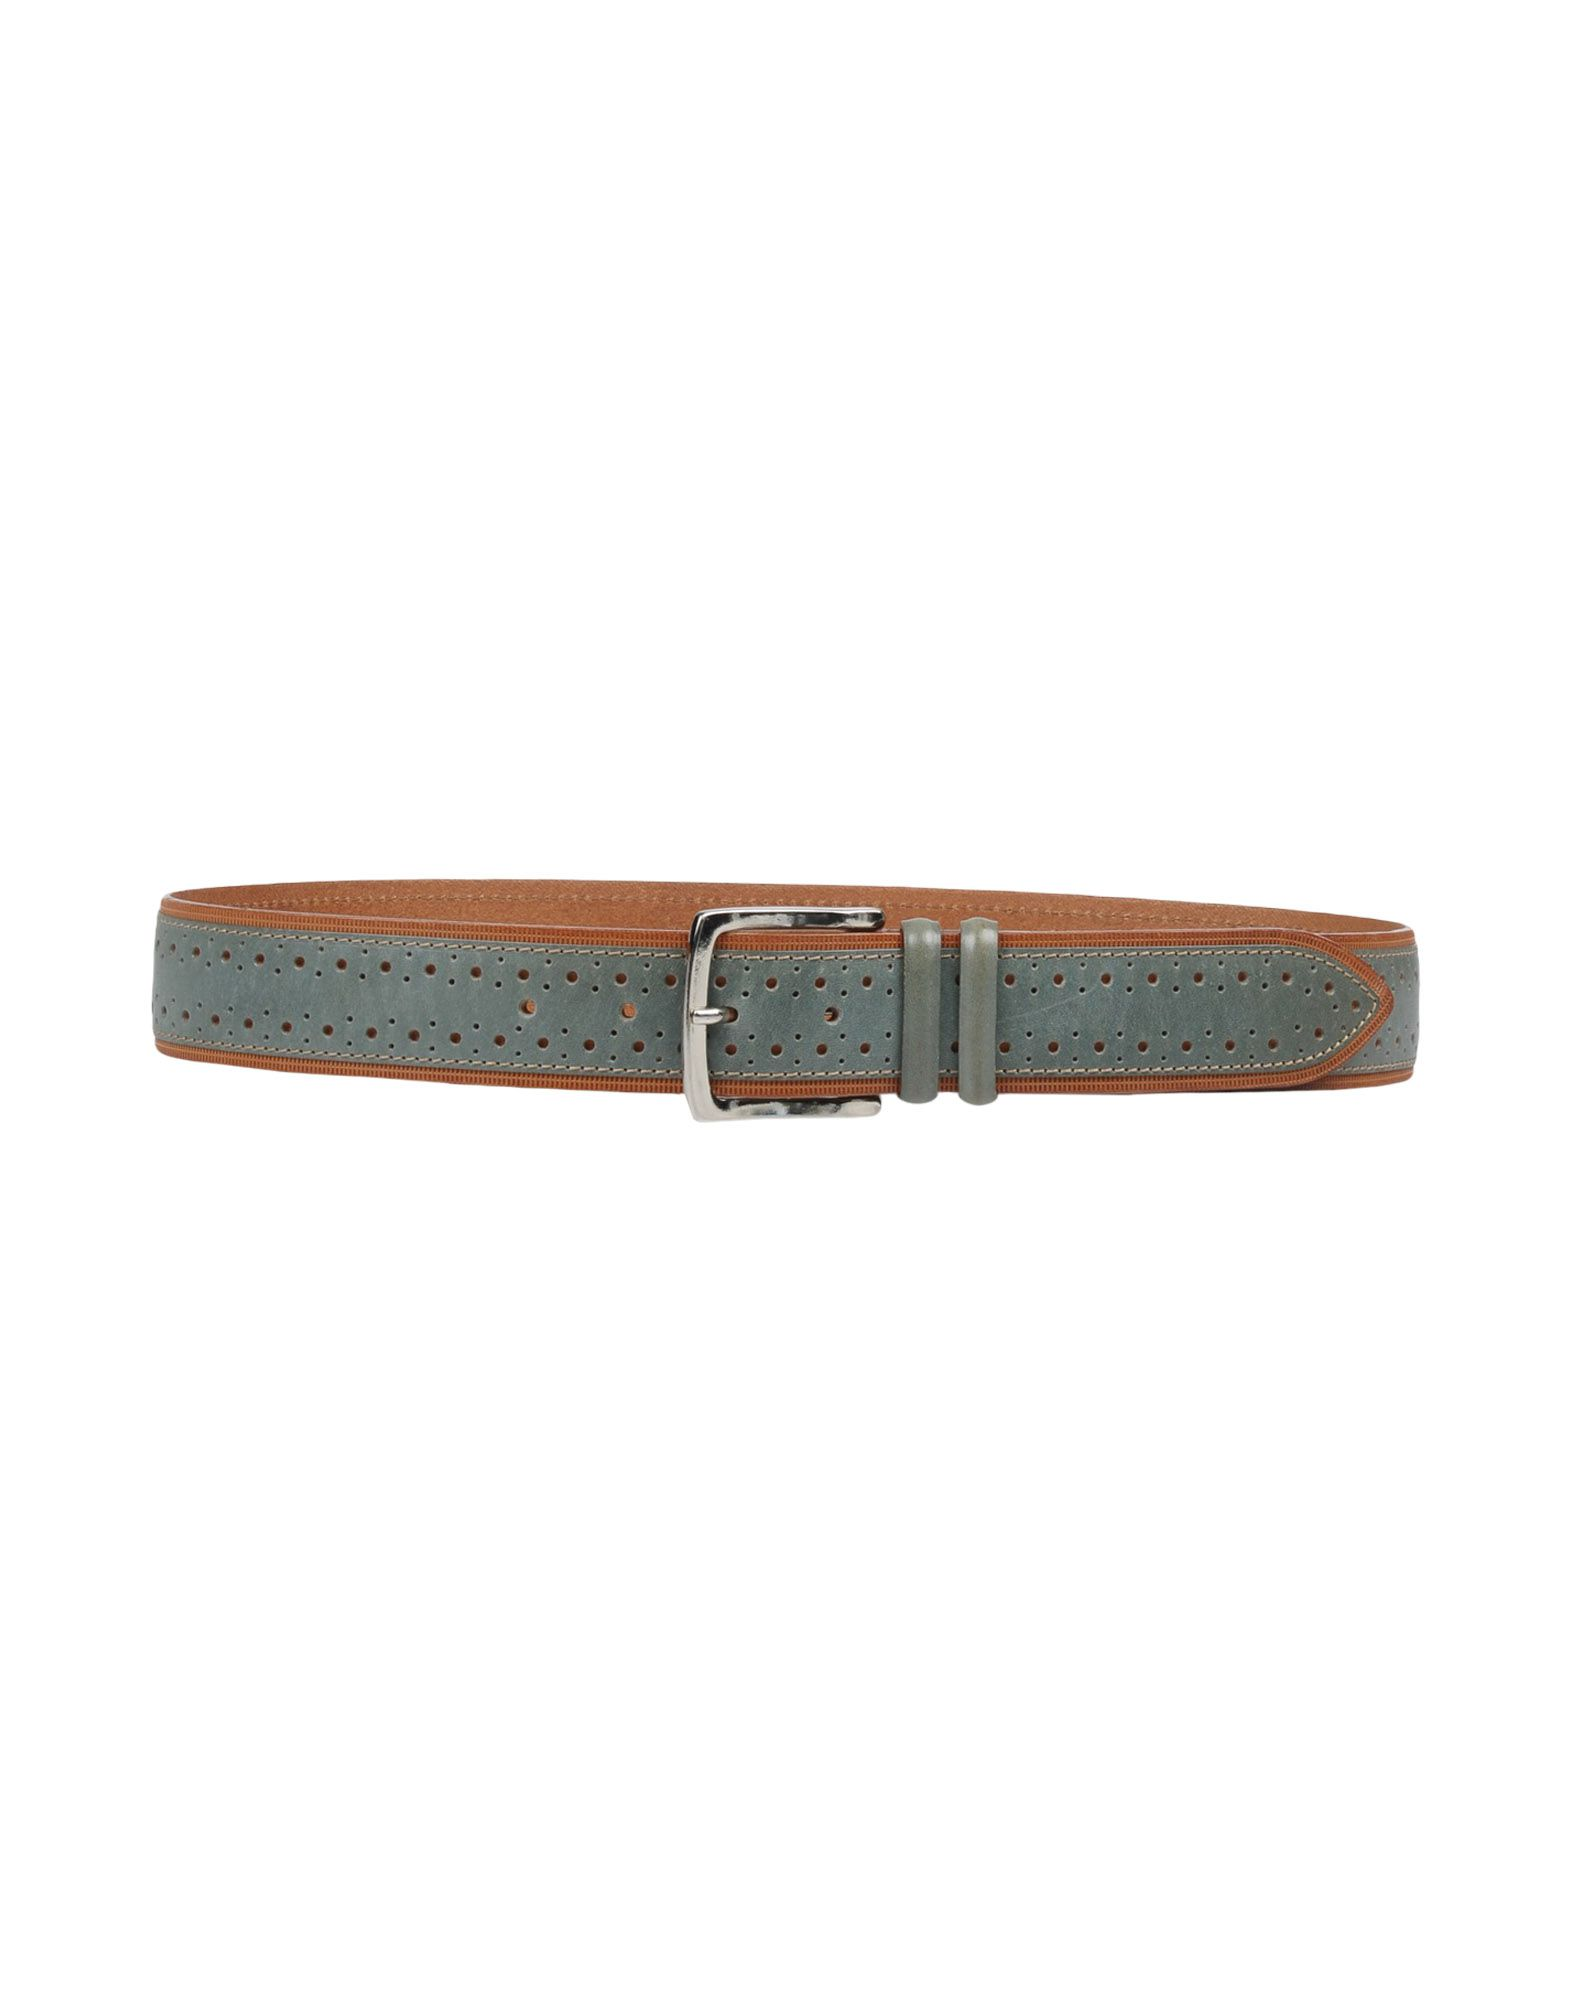 CLAUDIO ORCIANI Regular Belt in Green